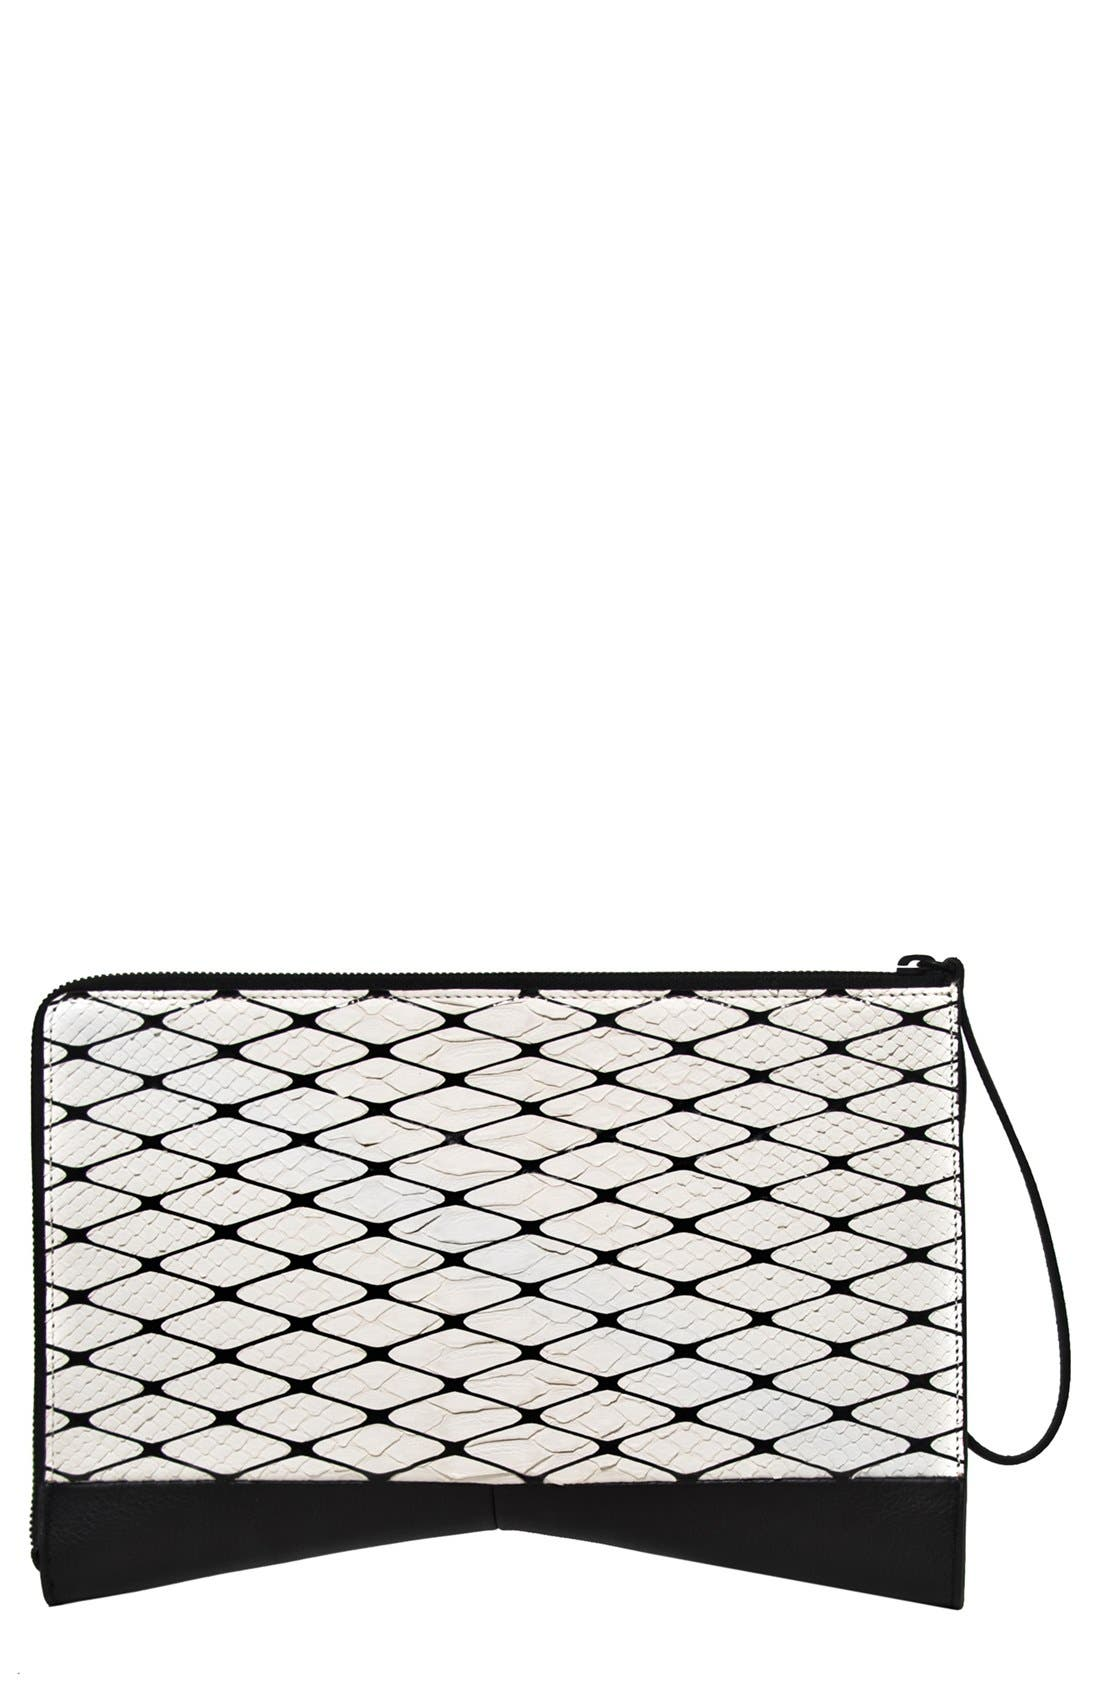 Main Image - Narciso Rodriguez 'Boomerang' Genuine Python & Leather Clutch